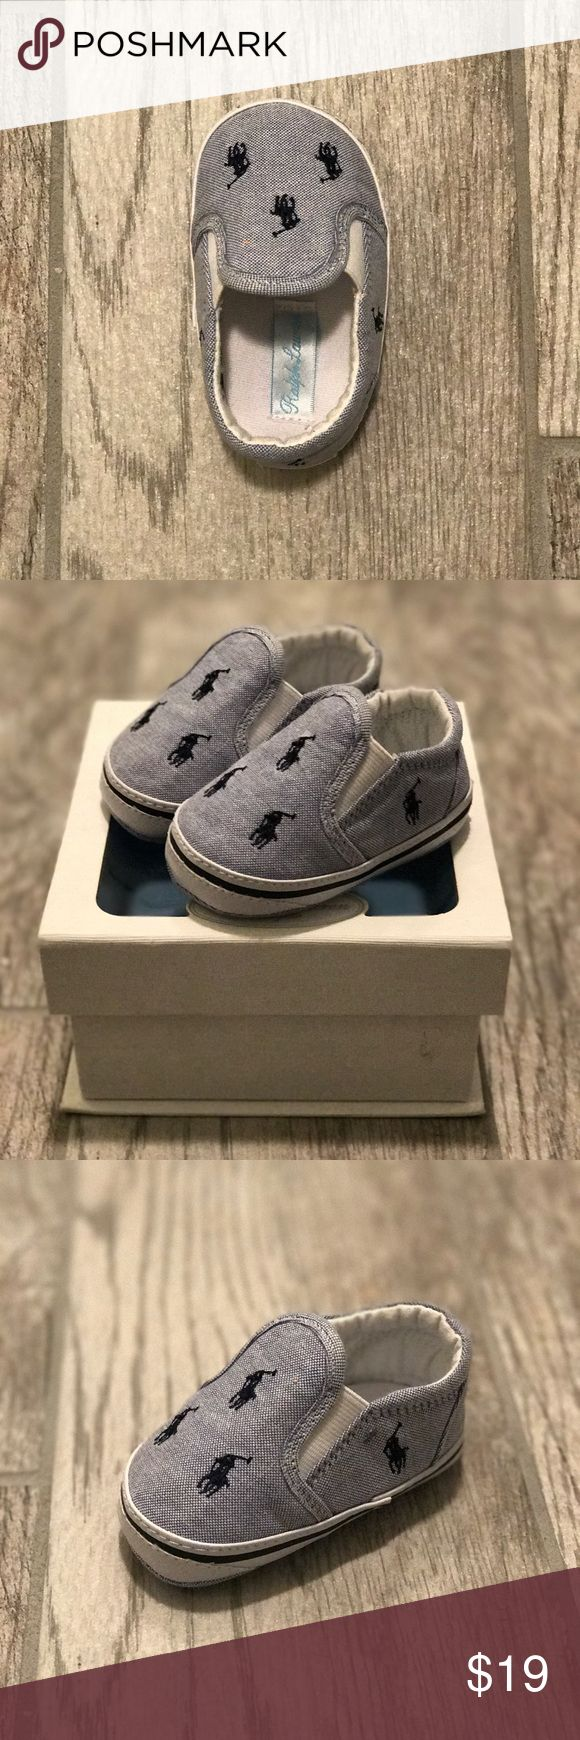 Polo Ralph Lauren Baby Boys' Shoe💙 Never worn, Size 3 Baby Slip On Casual Sneaker Polo by Ralph Lauren Shoes Sneakers